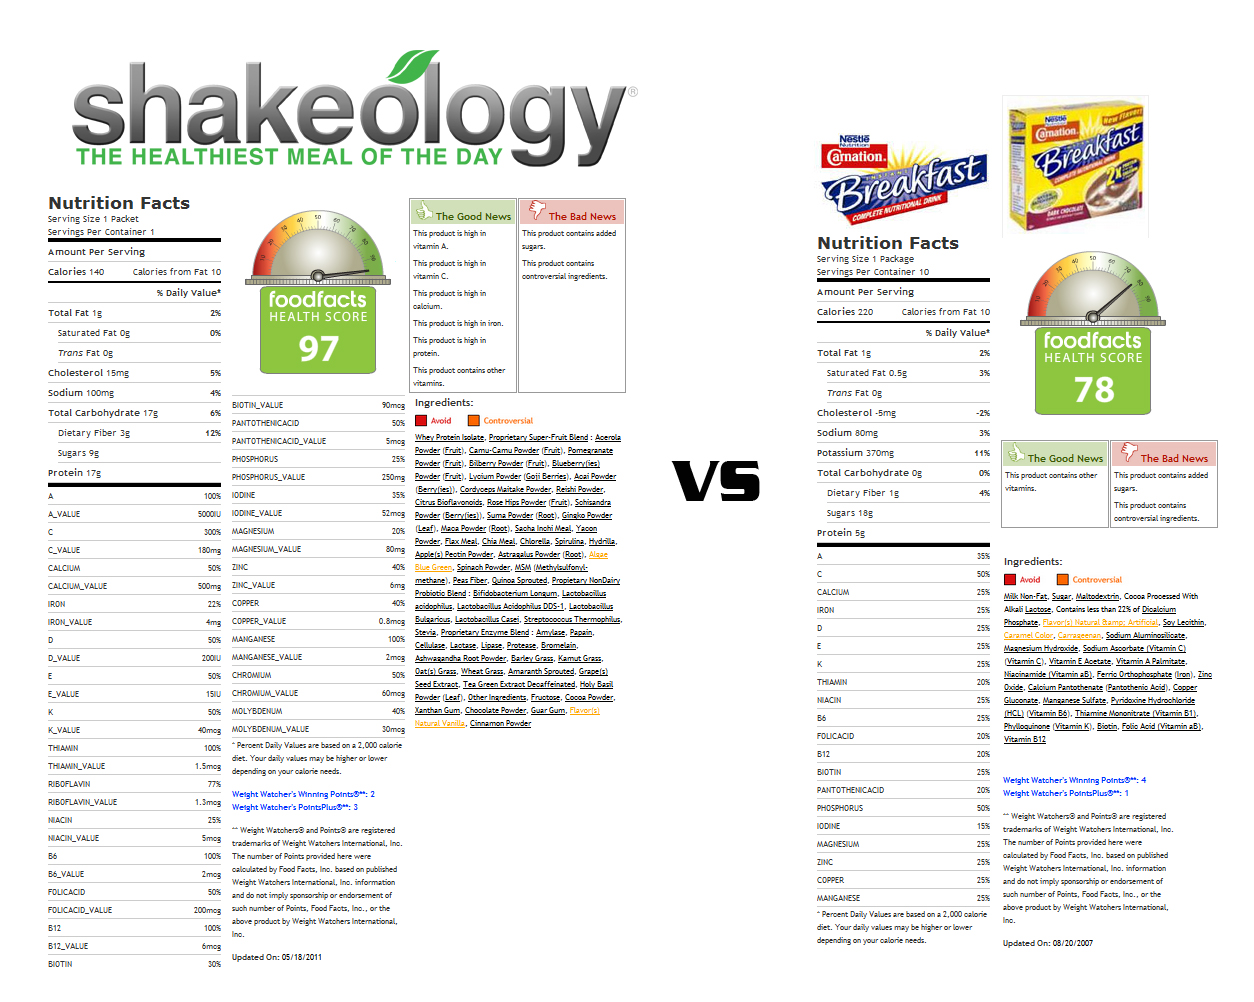 NEW Shakeology Review 2018 [WARNING]: Does It Really Work?